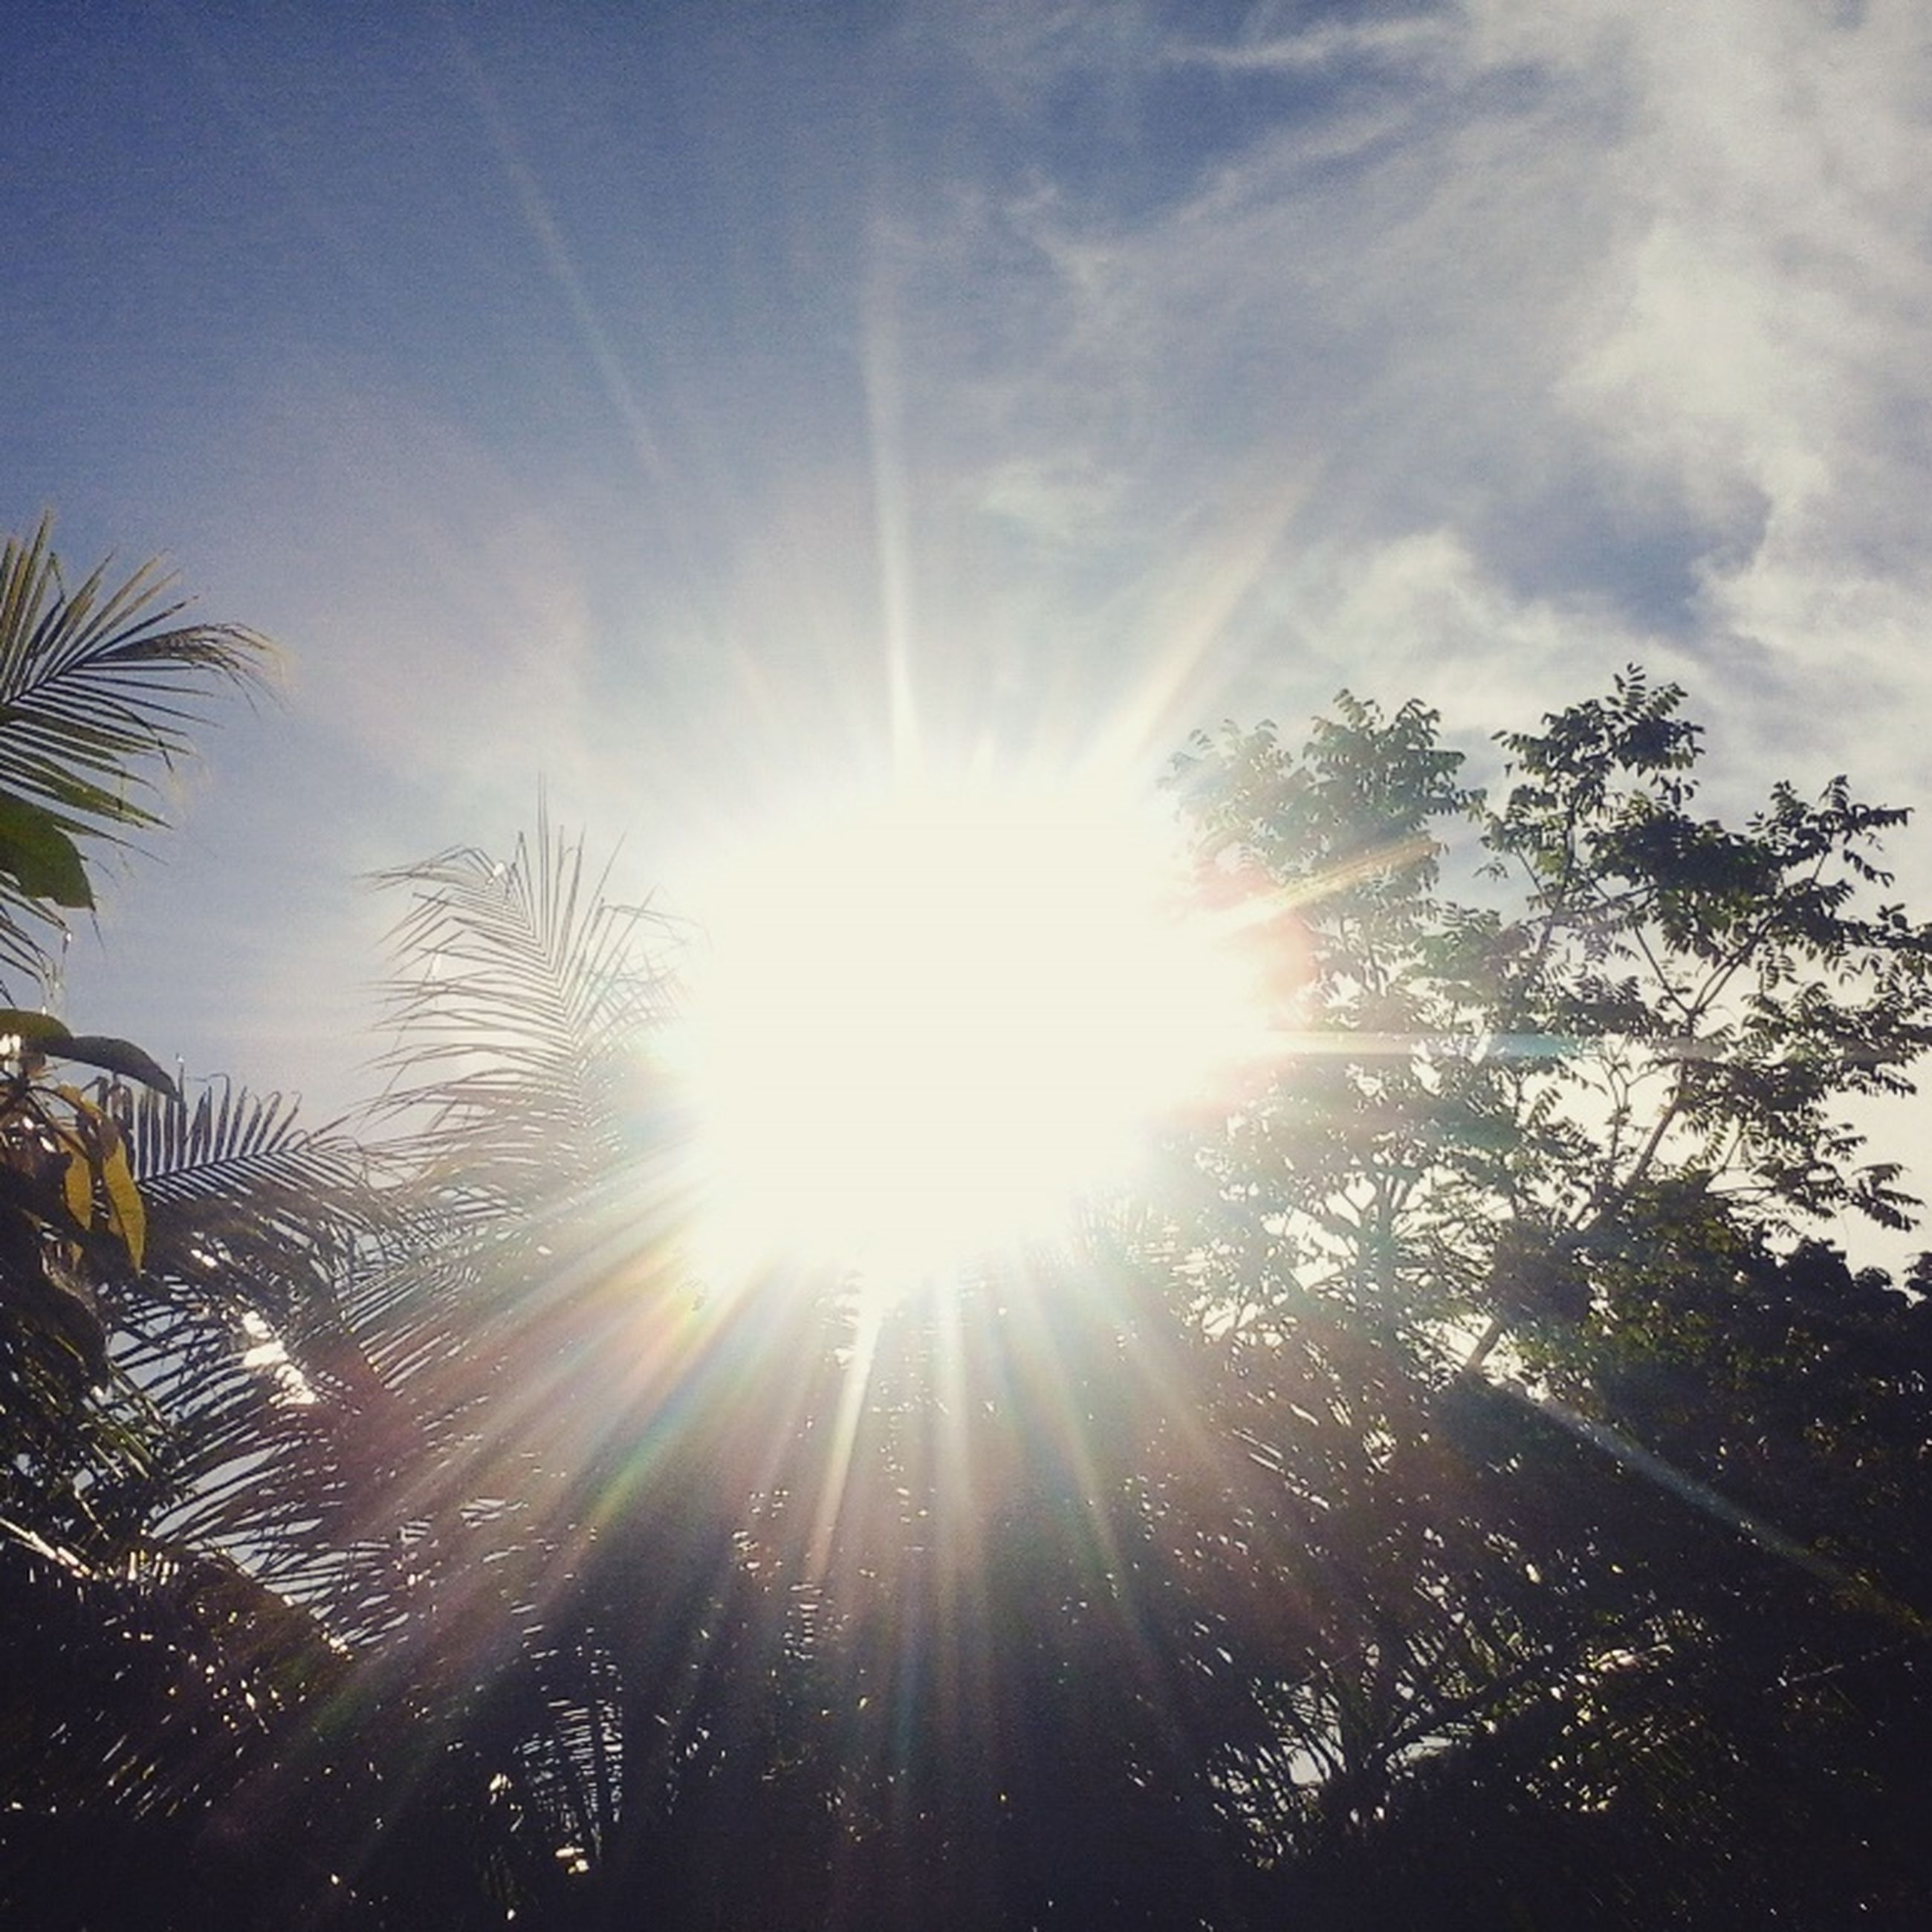 sun, sunbeam, lens flare, sunlight, tree, bright, low angle view, sunny, sky, tranquility, nature, beauty in nature, growth, back lit, tranquil scene, scenics, silhouette, day, shining, brightly lit